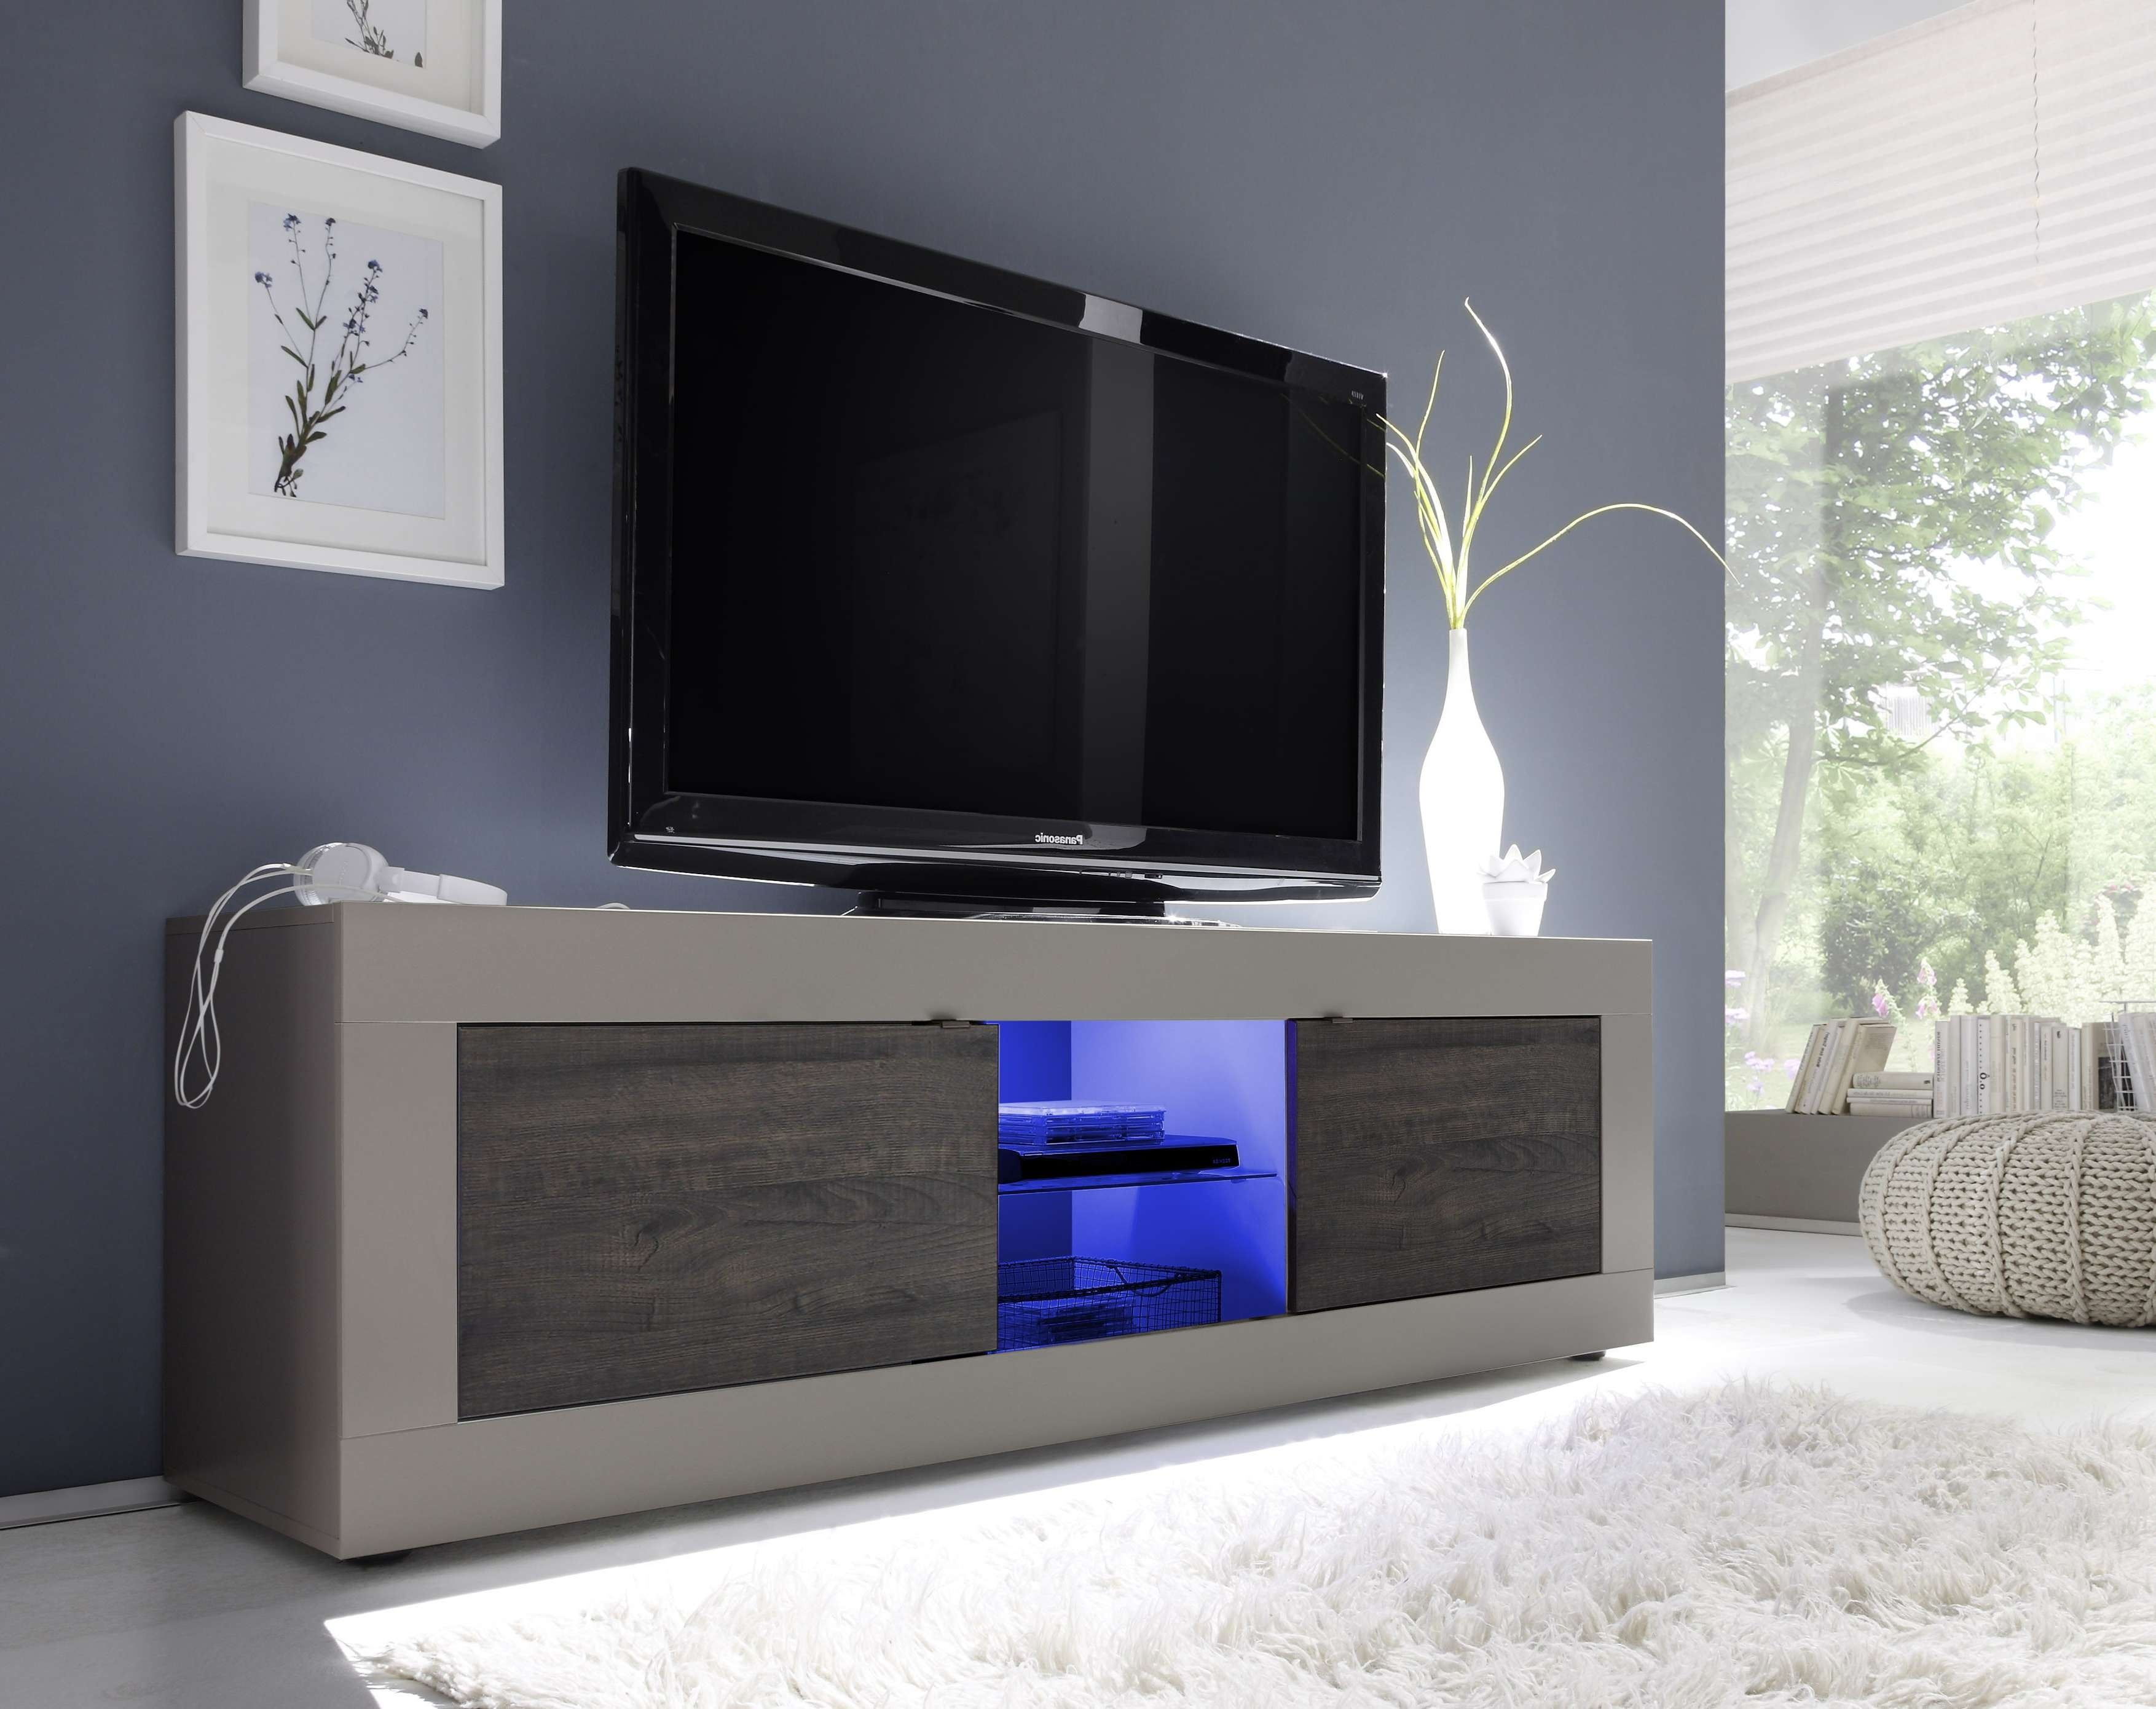 Tv : Wenge Tv Cabinets Uncommon Wenge Tv Stands' Awesome Wenge Tv In Big Tv Cabinets (View 7 of 20)